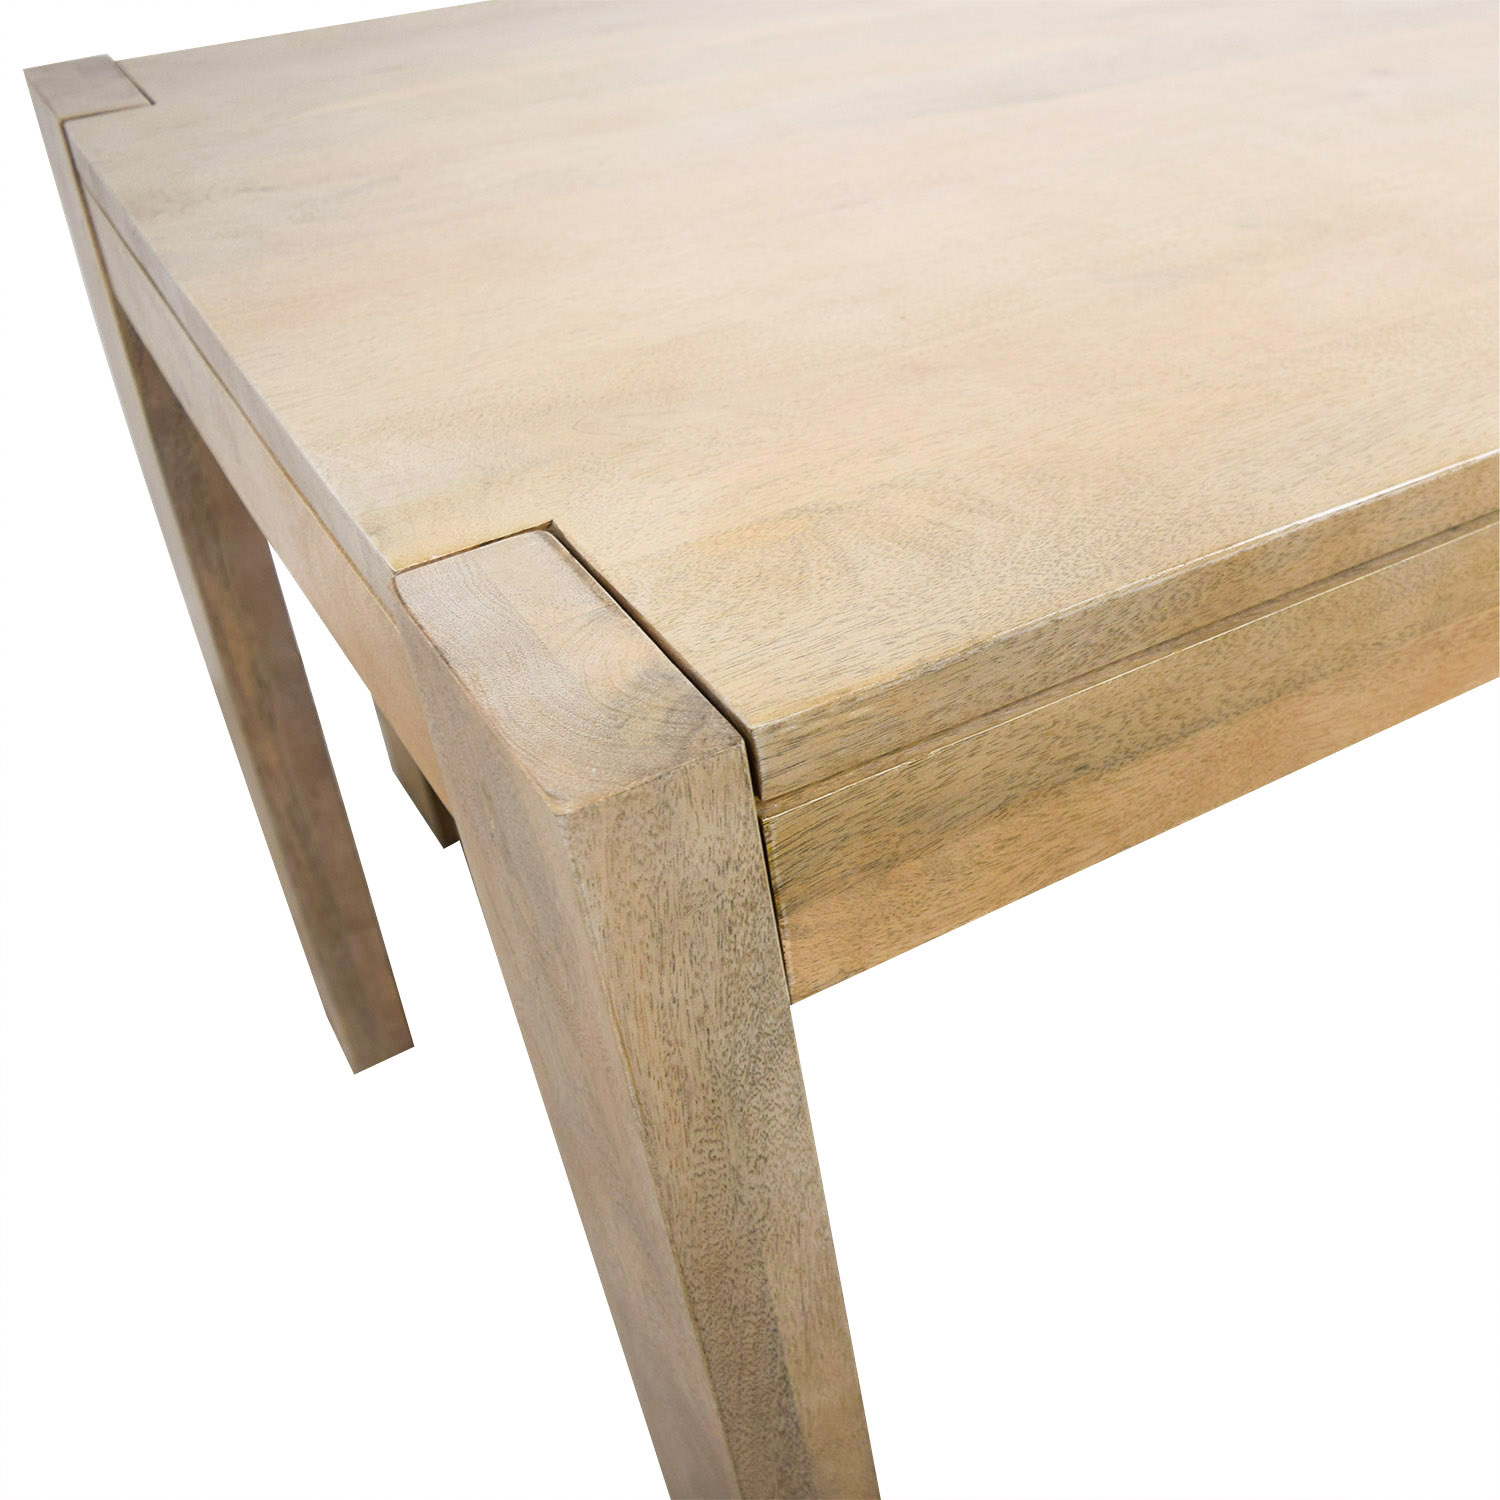 West Elm West Elm Boerum Dining Table and Benches used